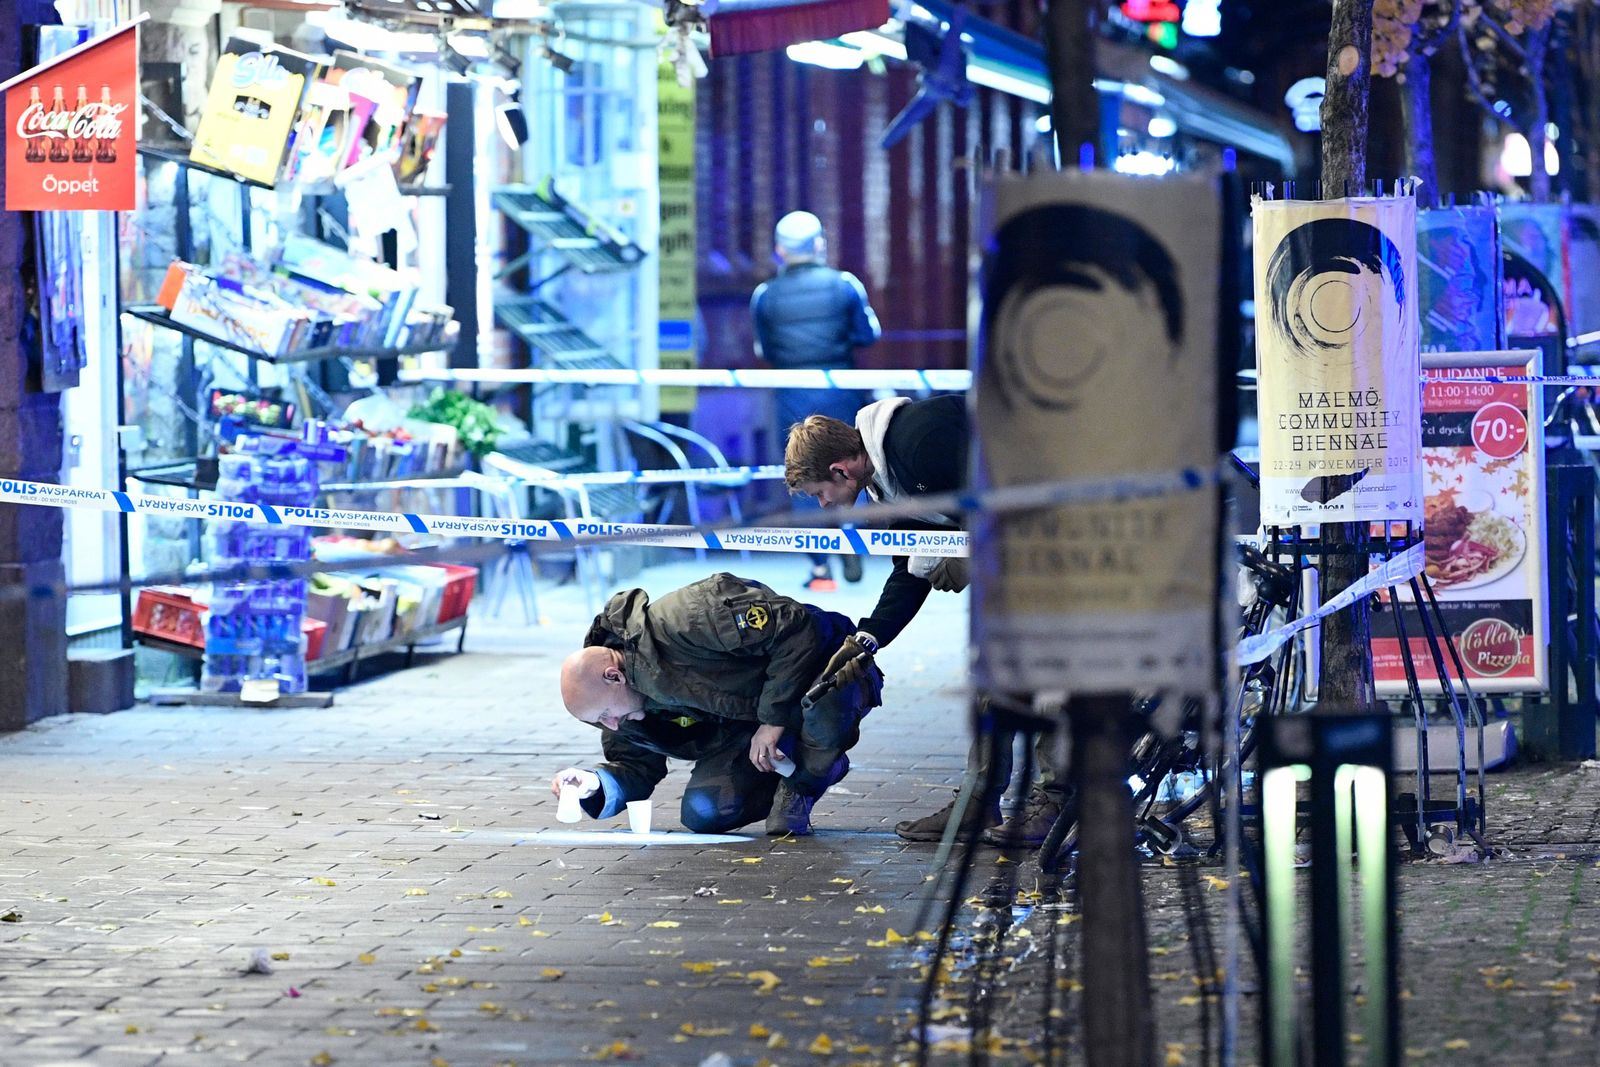 In this photo taken late Saturday, Nov. 9, 2019, a policeman works near the scene of a shooting, in Malmo, Sweden.{ } (Johan Nilsson/TT News Agency via AP)